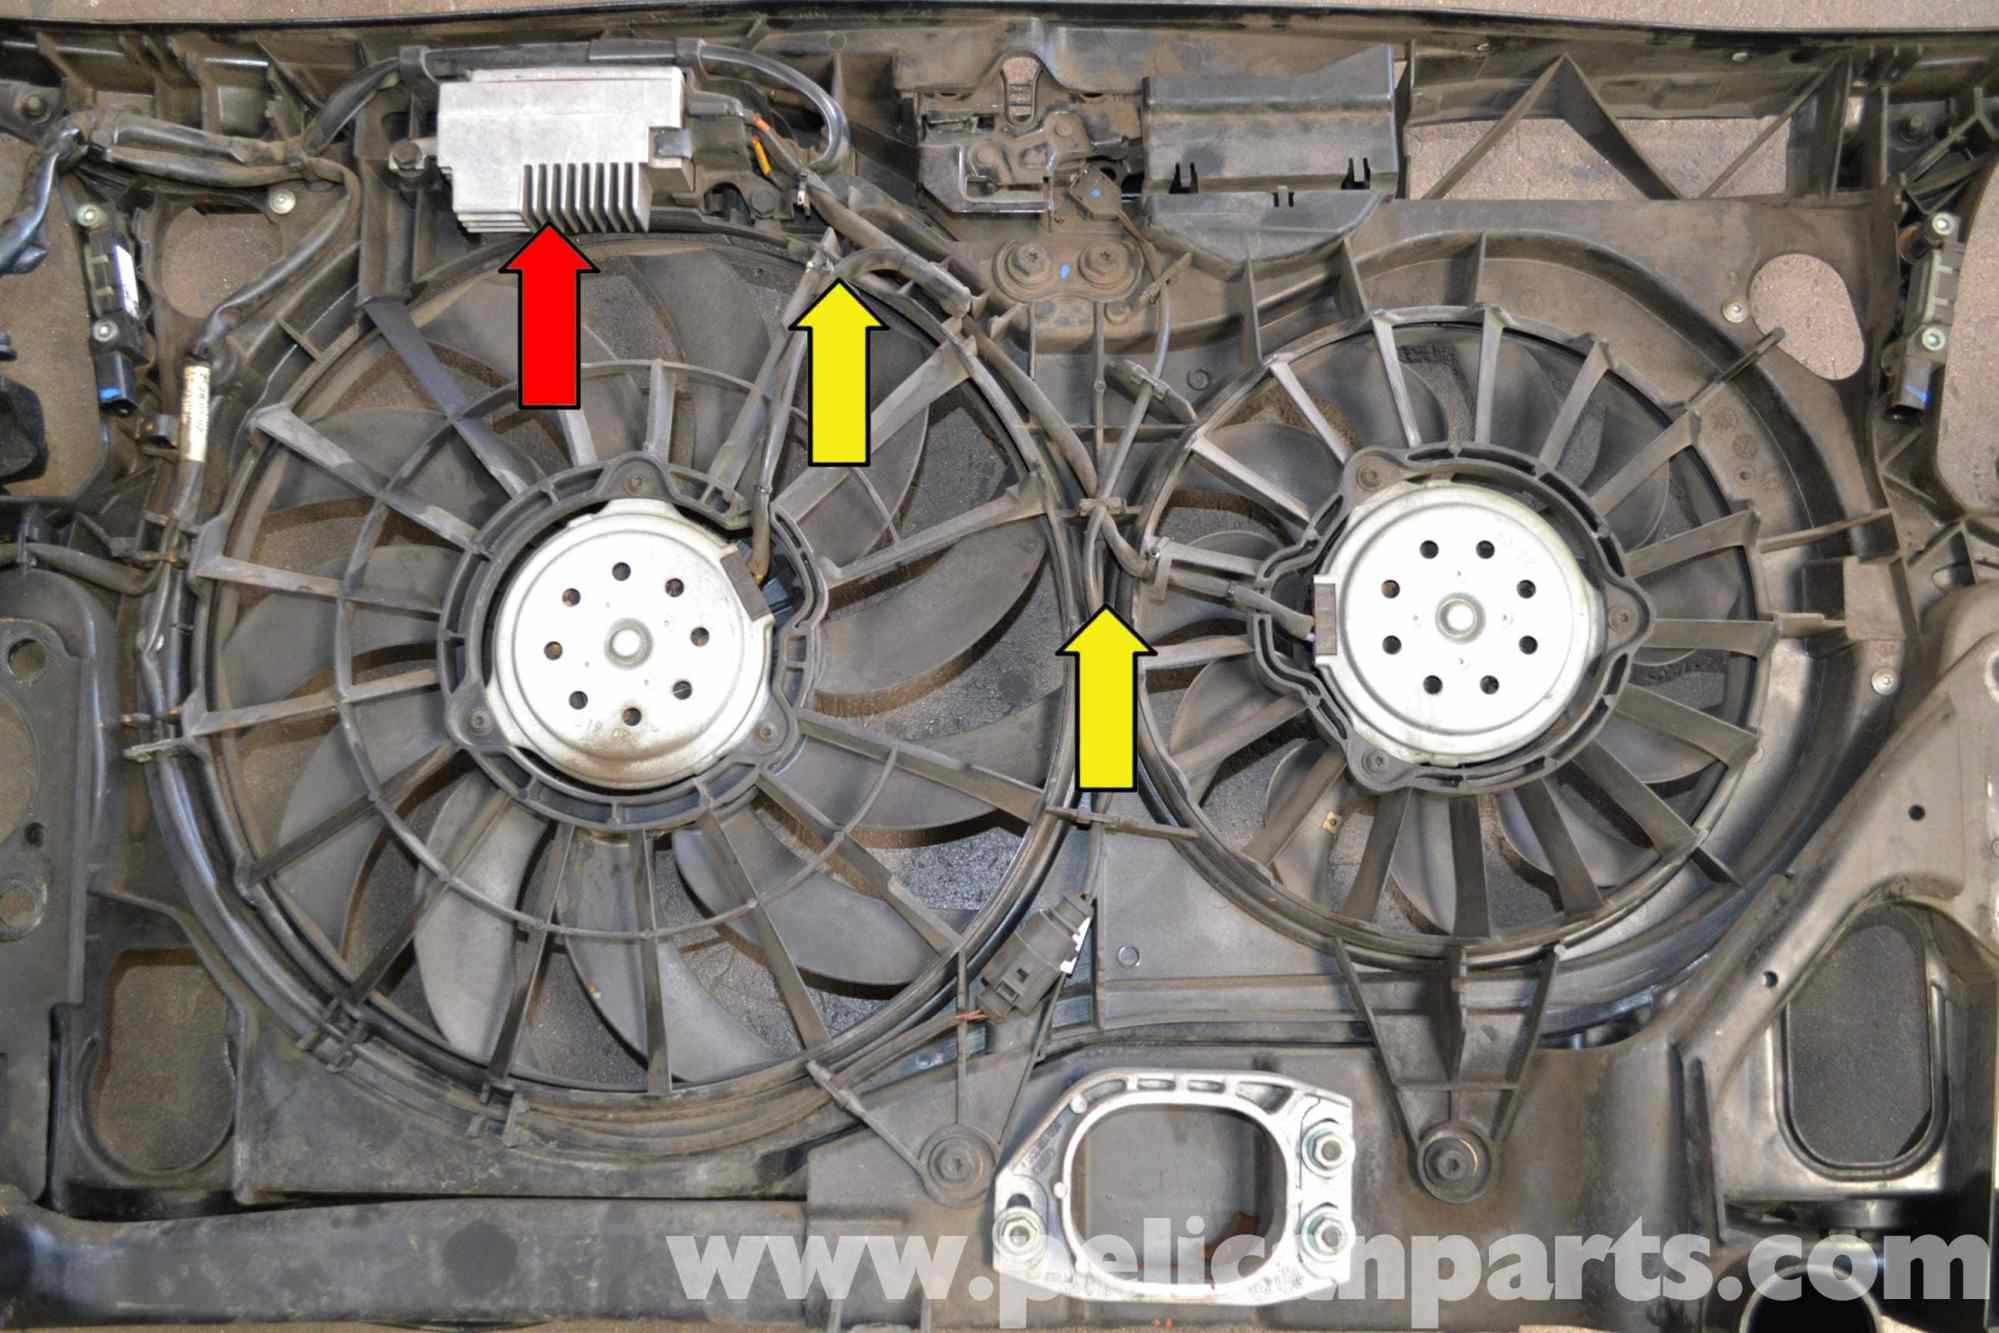 hight resolution of audi a4 b6 fan and shroud replacement 2002 2008 pelican parts 2006 audi a4 cooling fan wiring diagram